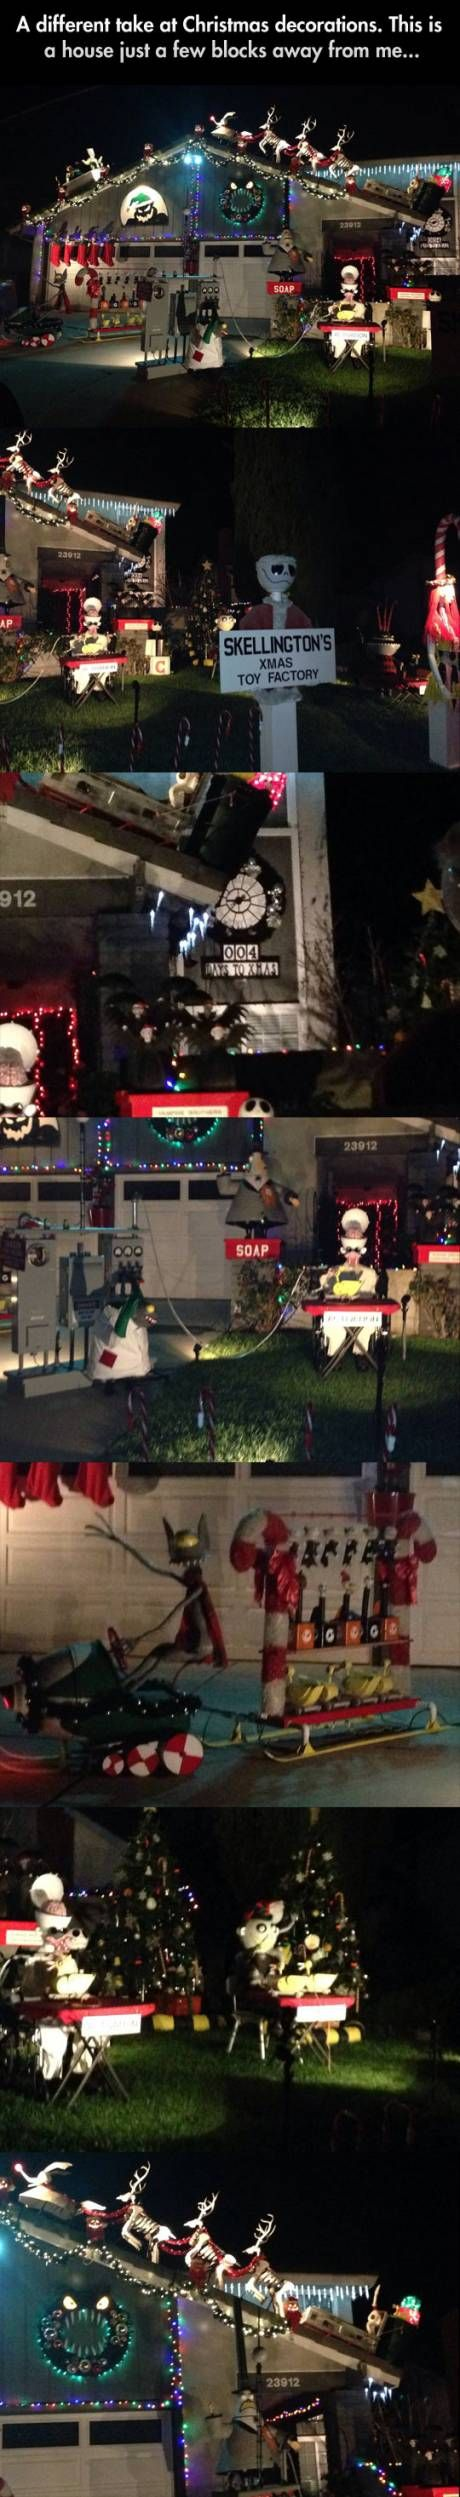 Awesome Nightmare Before Christmas decorations!